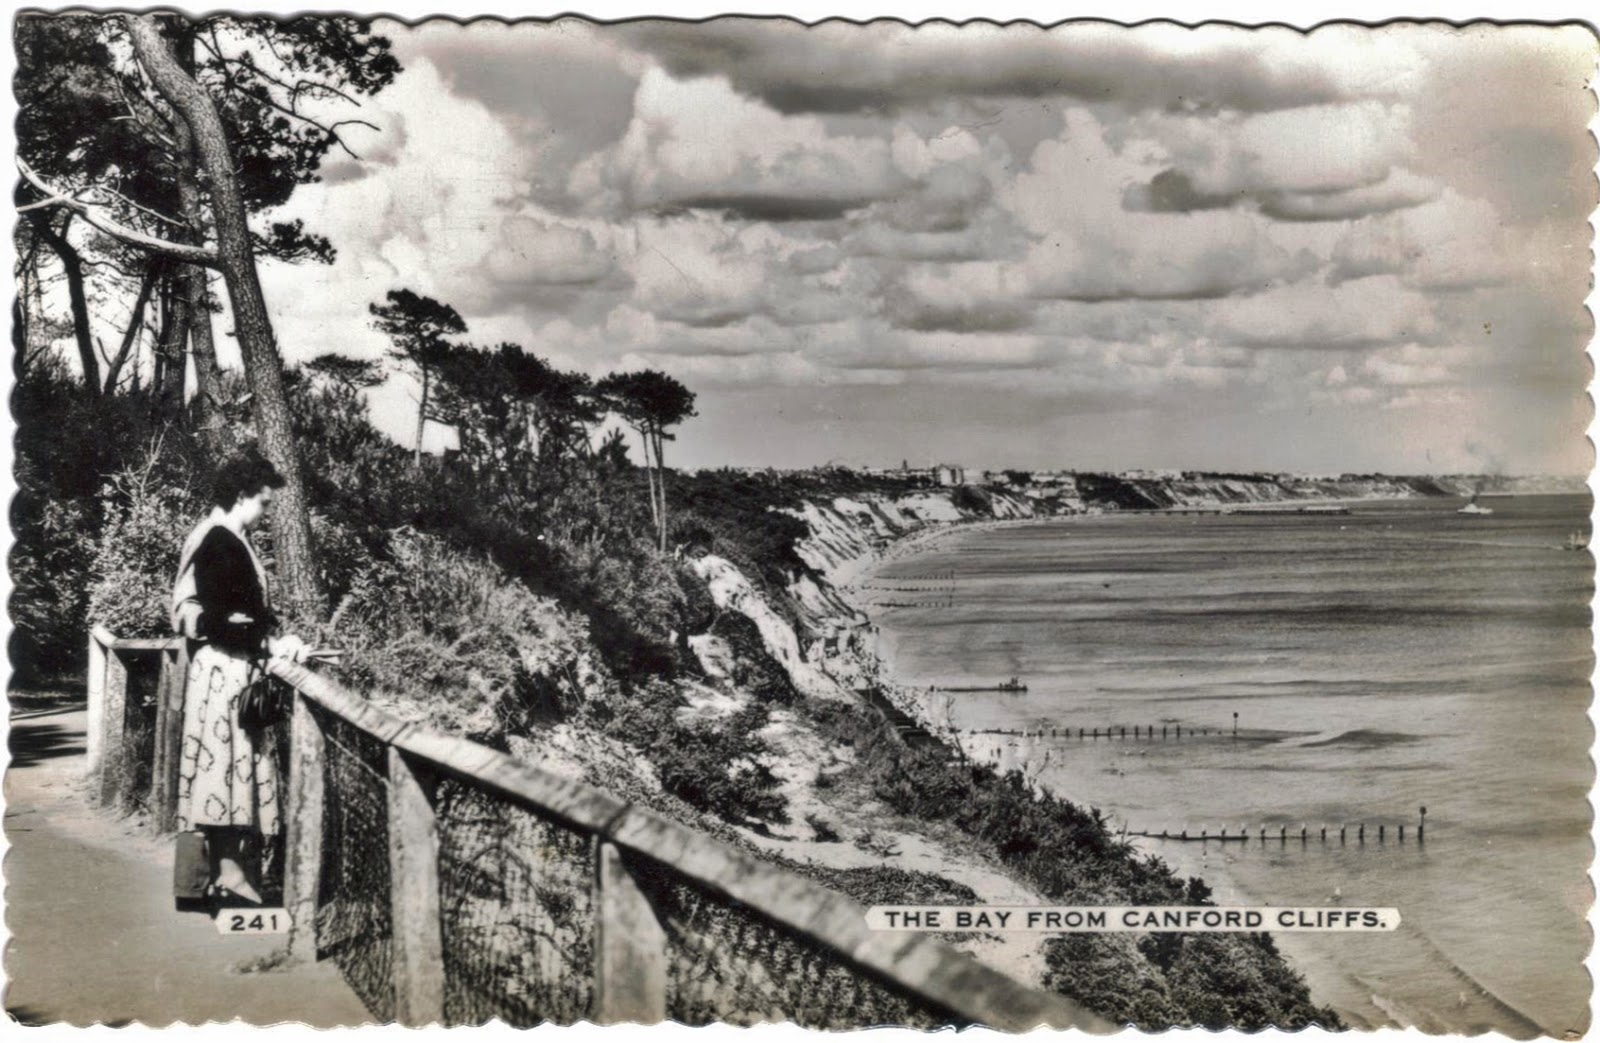 Canford Cliffs, Poole, Dorset